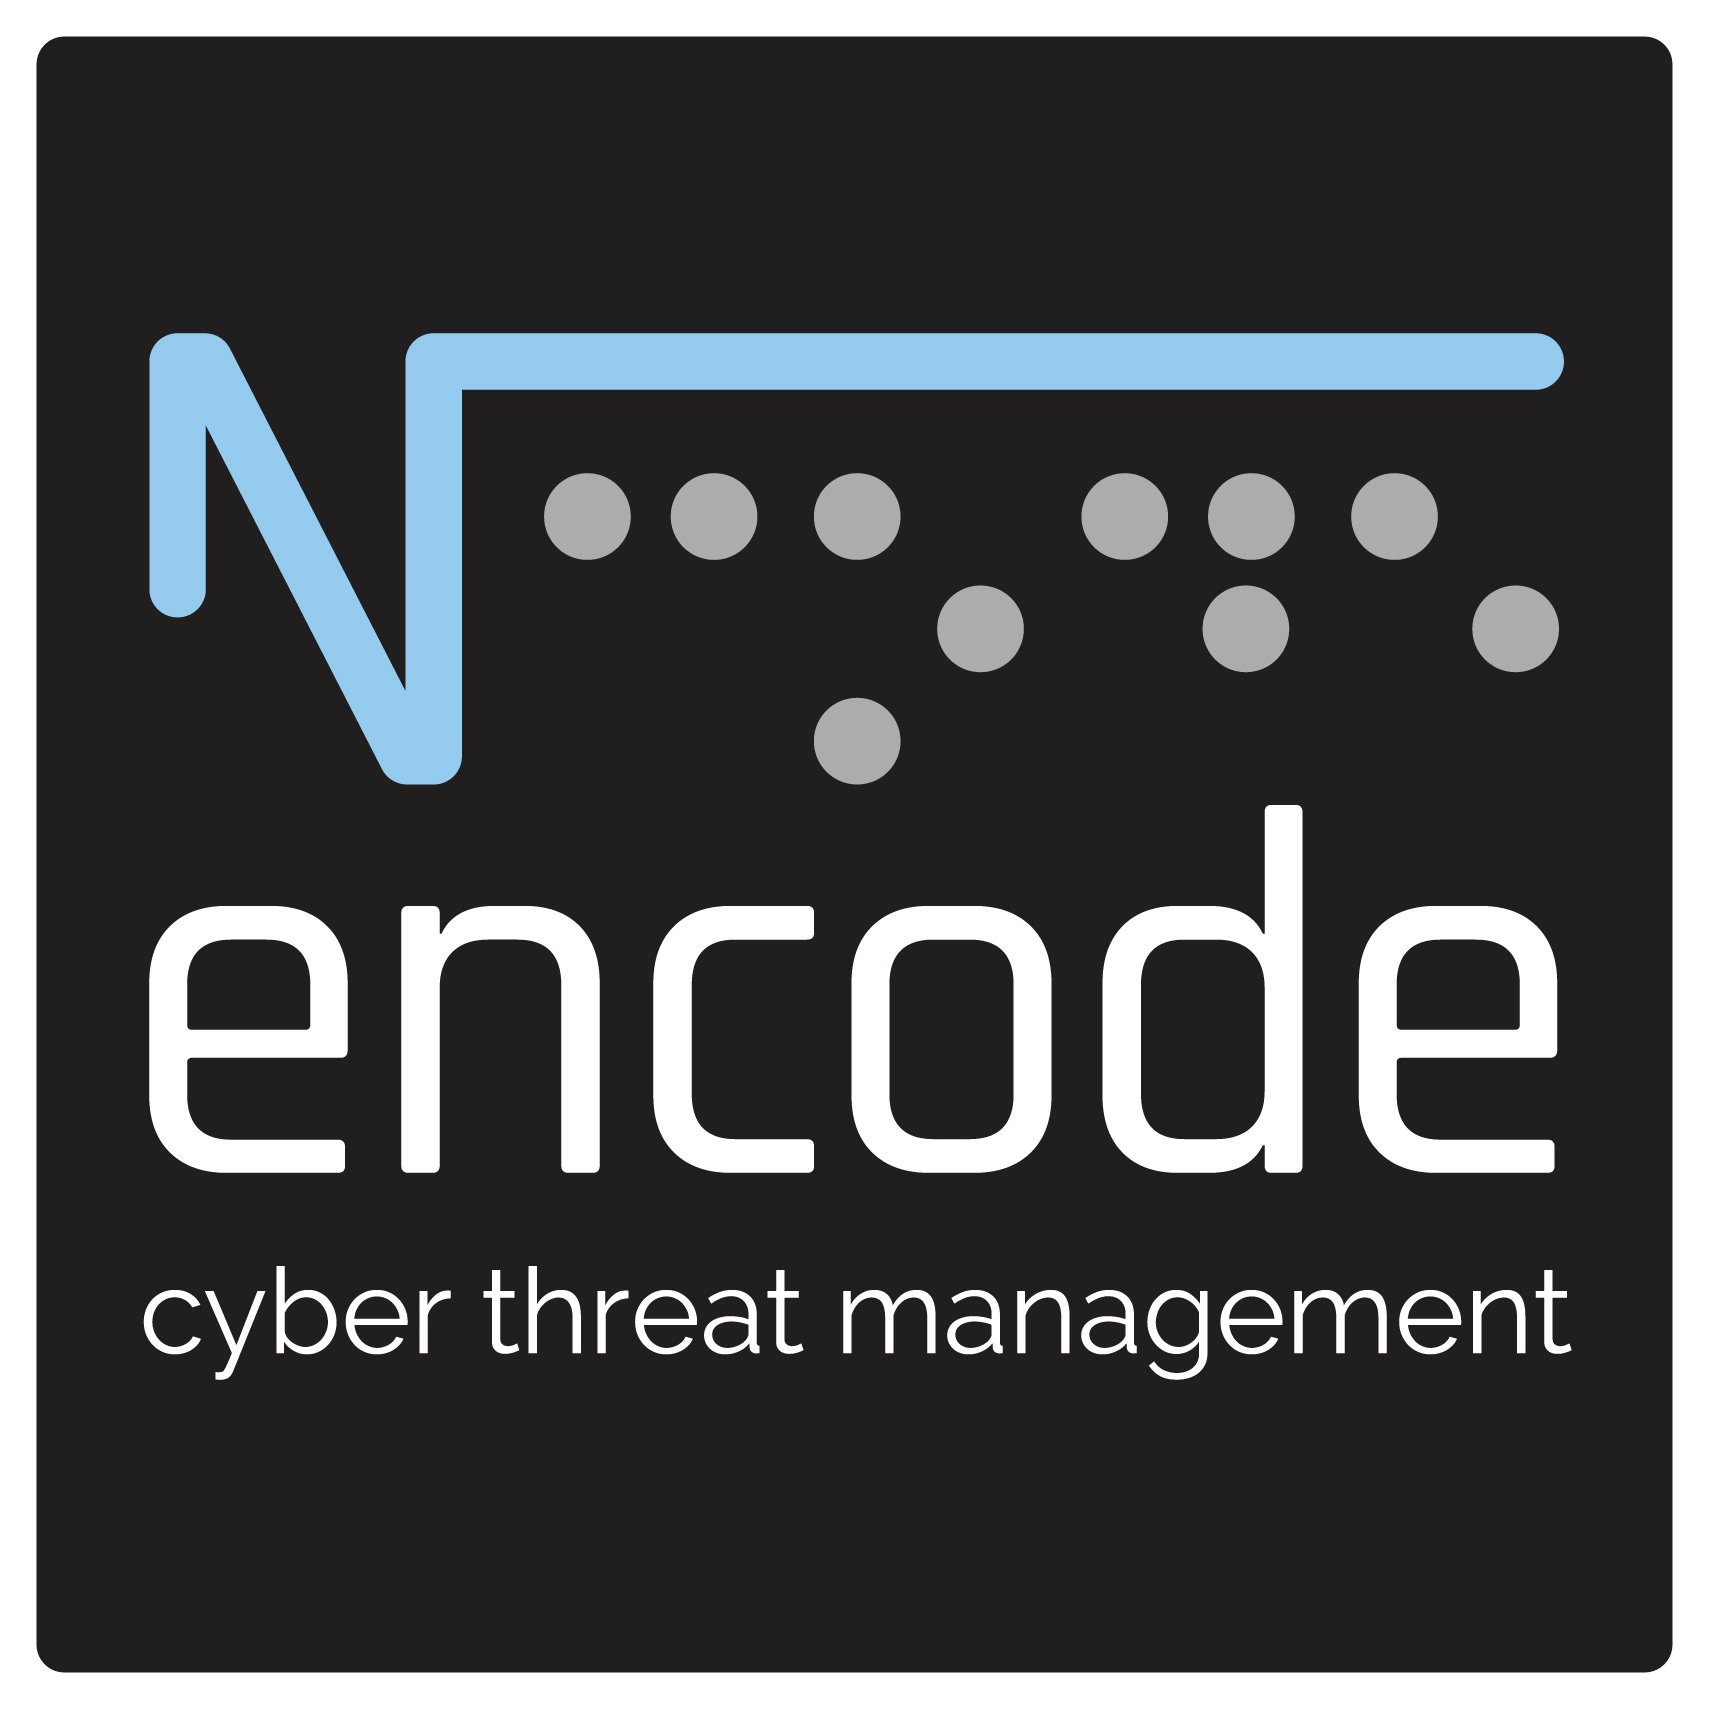 encode 1 (blank background)